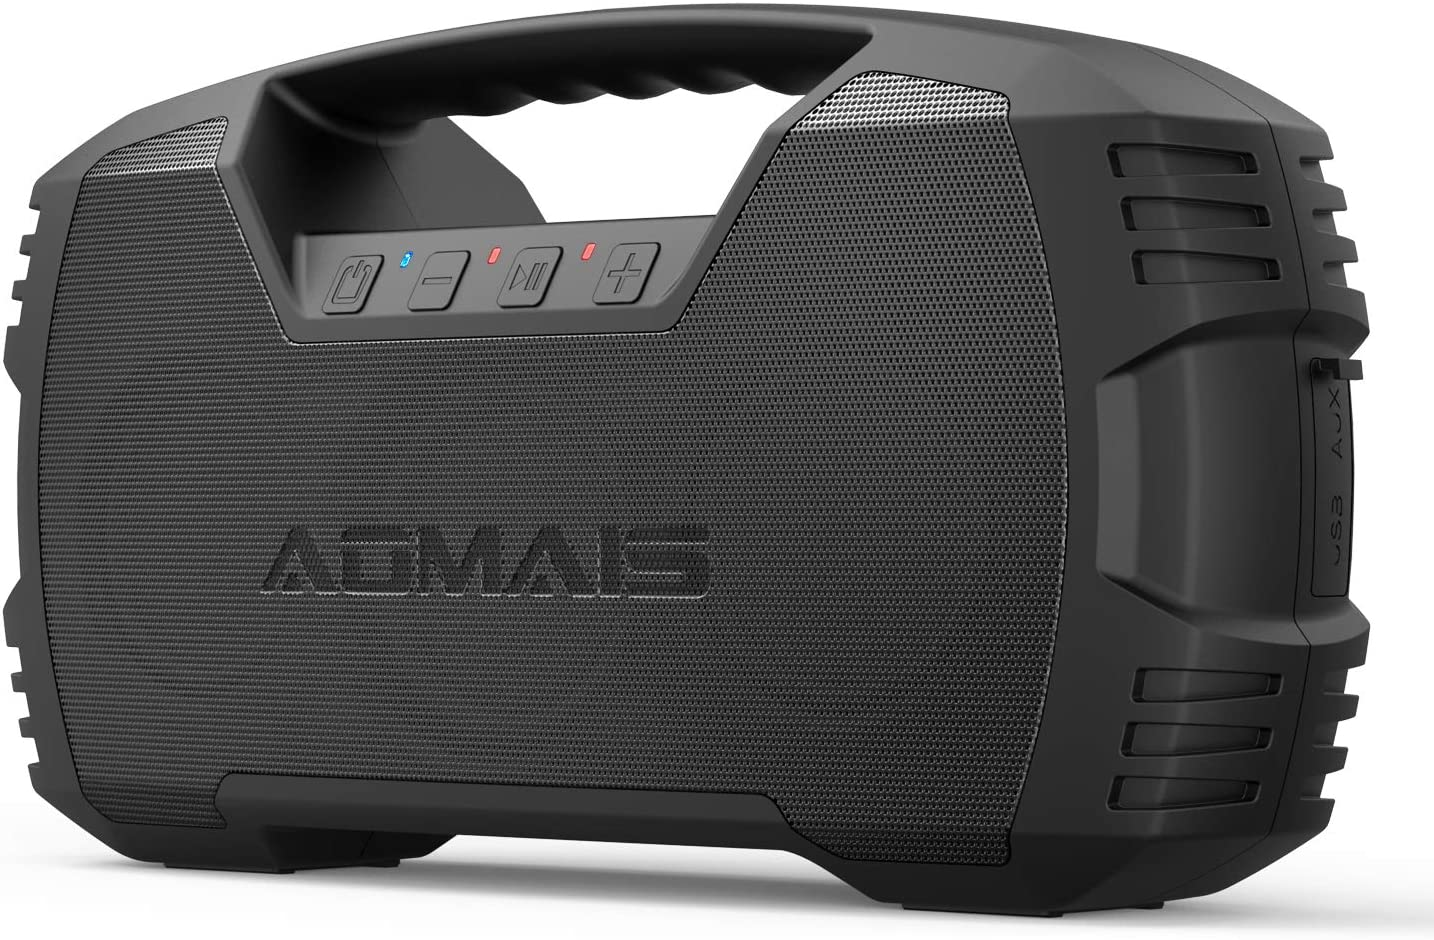 Amazon Com Aomais Go Bluetooth Speakers 40h Playtime Outdoor Portable Speaker 40w Stereo Sound Rich Bass Ipx7 Waterproof Bluetooth 5 0 Wireless Pairing 10000mah Power Bank For Party Travel 2020 Upgrade Home Audio Theater